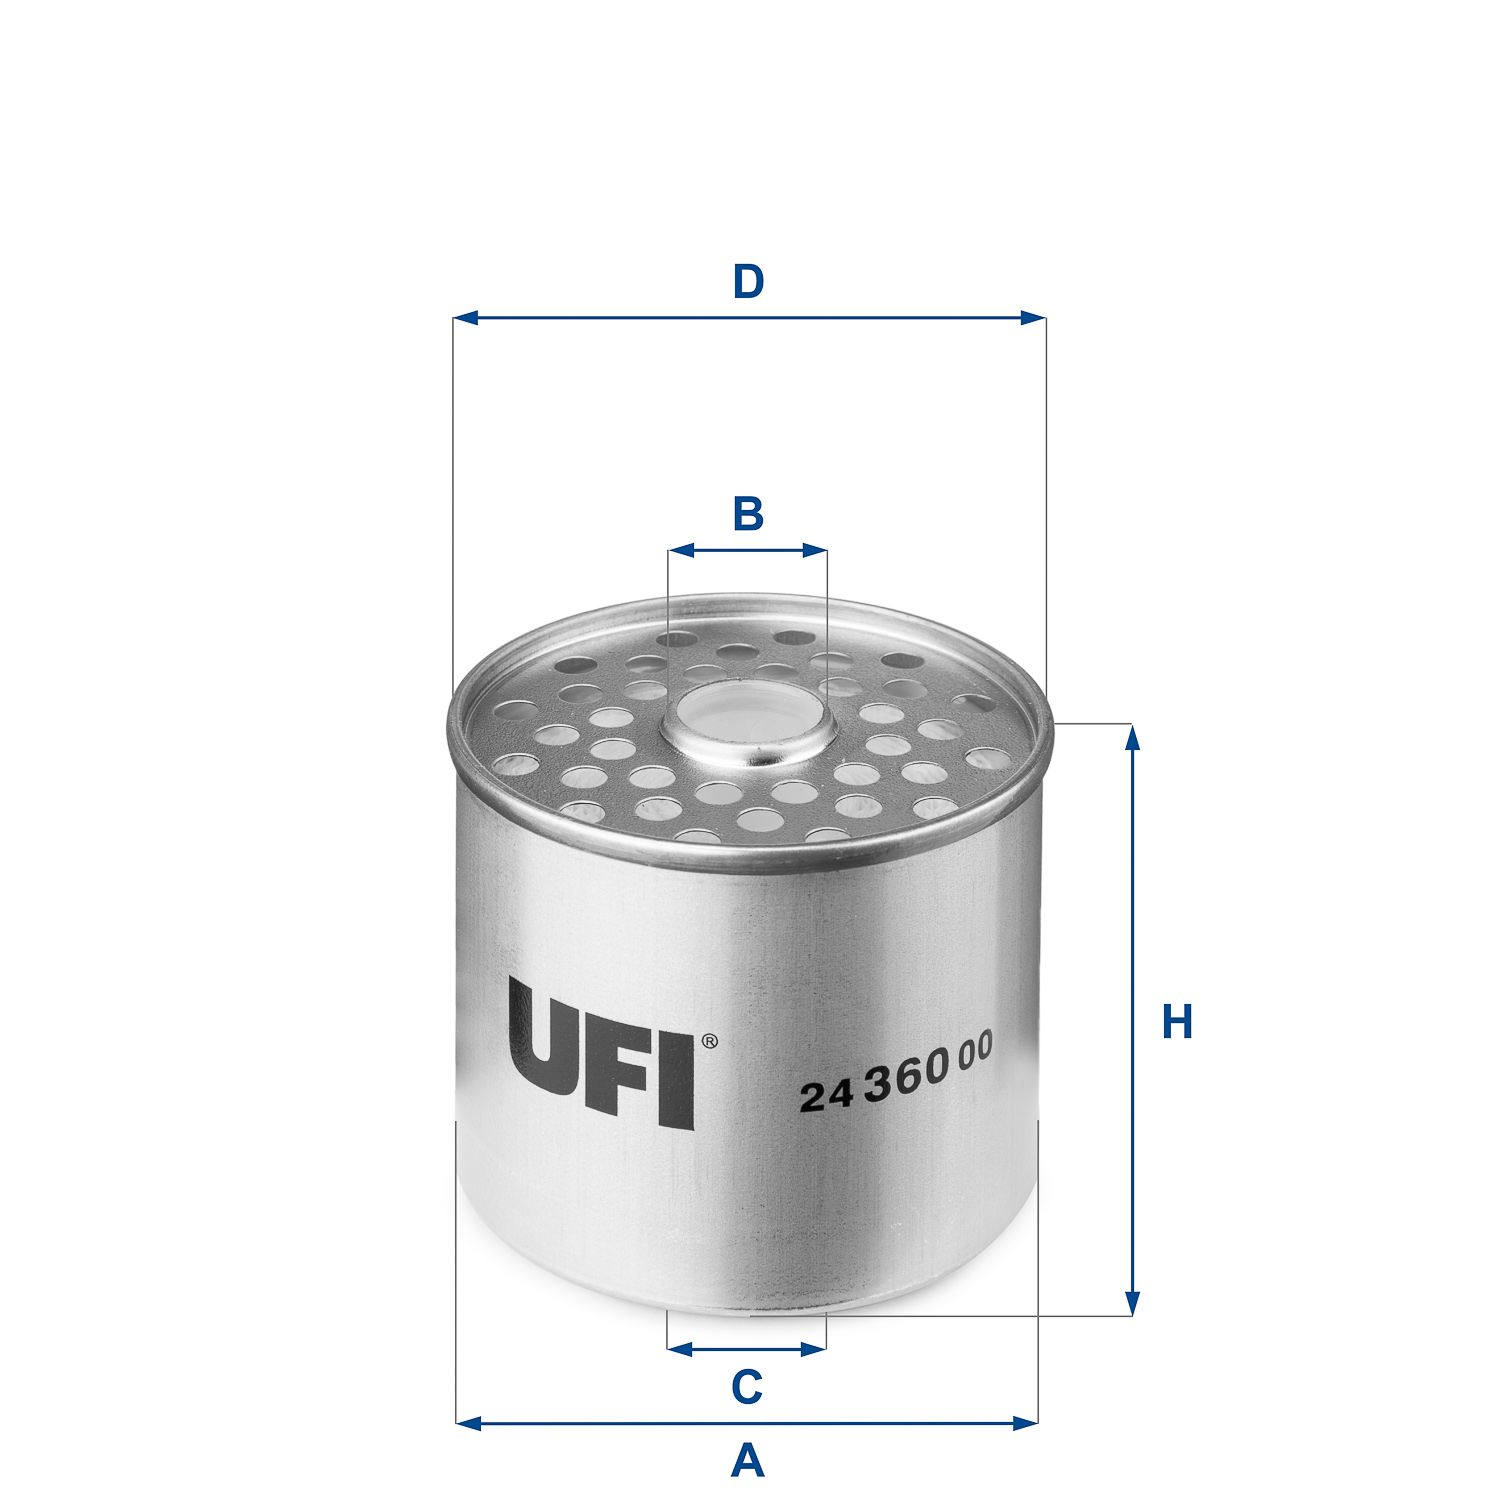 [SCHEMATICS_4UK]  CHAMPION L101/606 CFF100101 Fuel Filter In-Line Replaces 156720,156721  archives.midweek.com | Champion Fuel Filter |  | Midweek.com